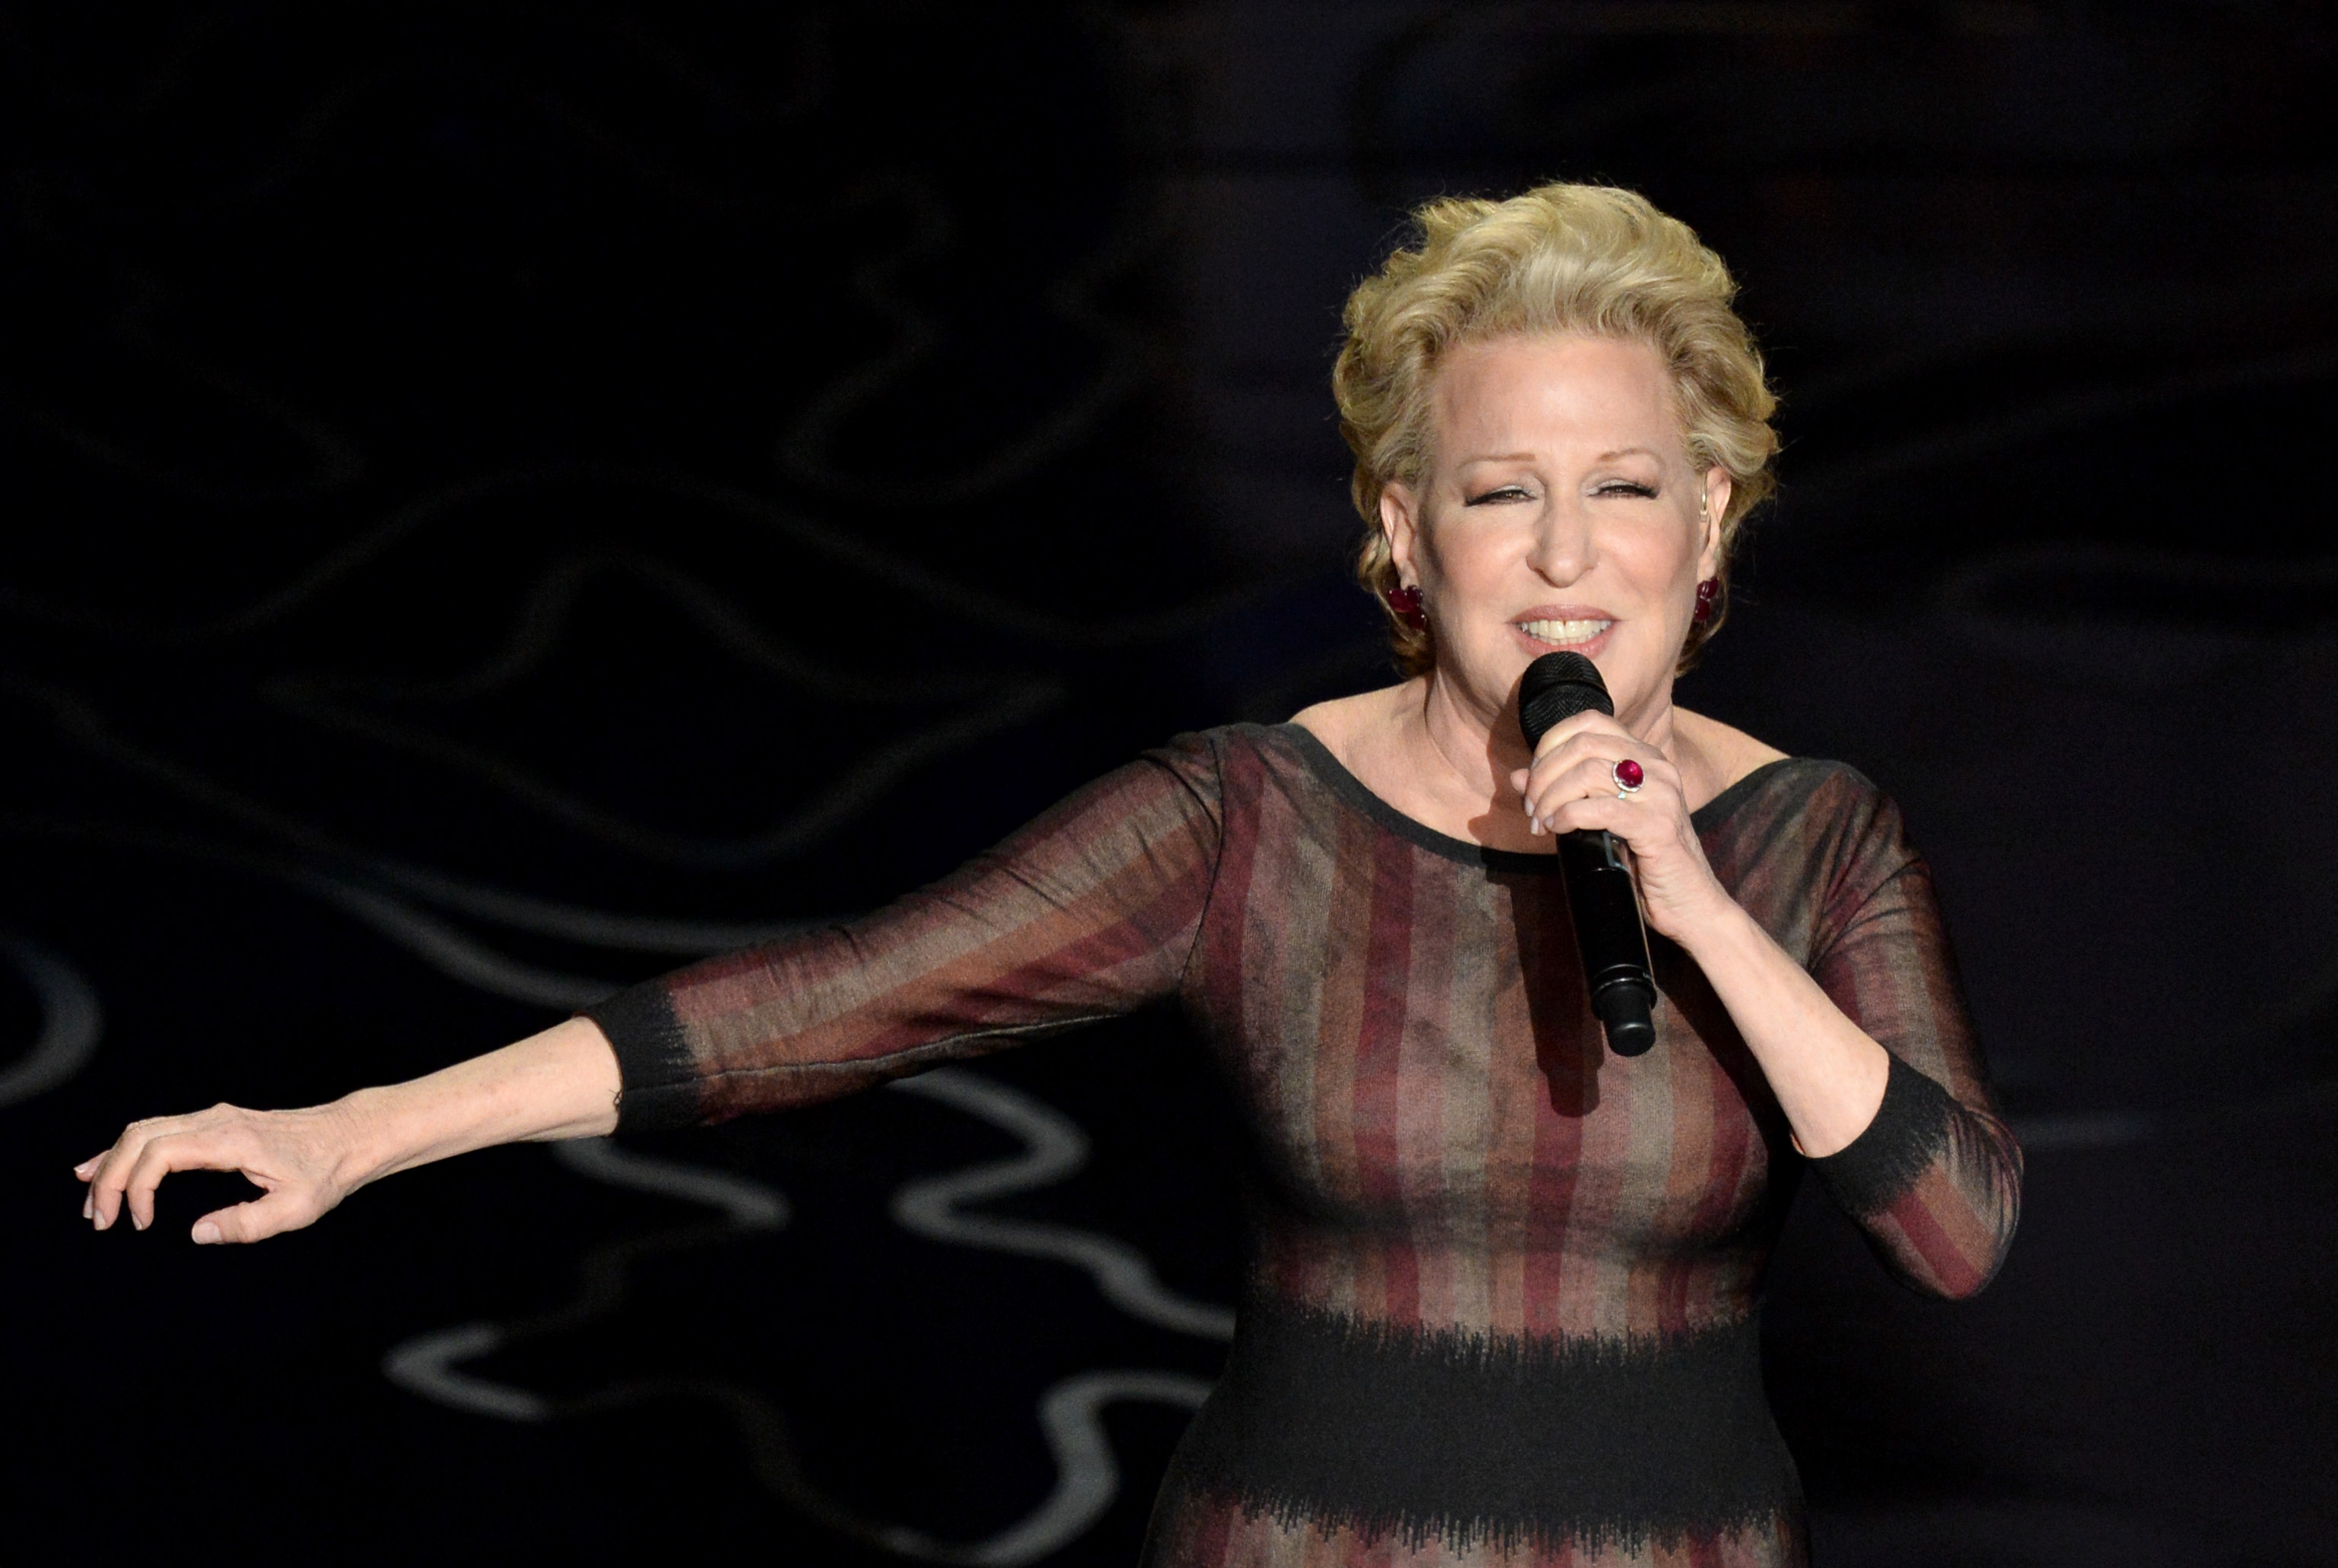 ette Midler performs onstage during the Oscars at the Dolby Theatre on March 2, 2014 in Hollywood, California.  (Photo by Kevin Winter/Getty Images)